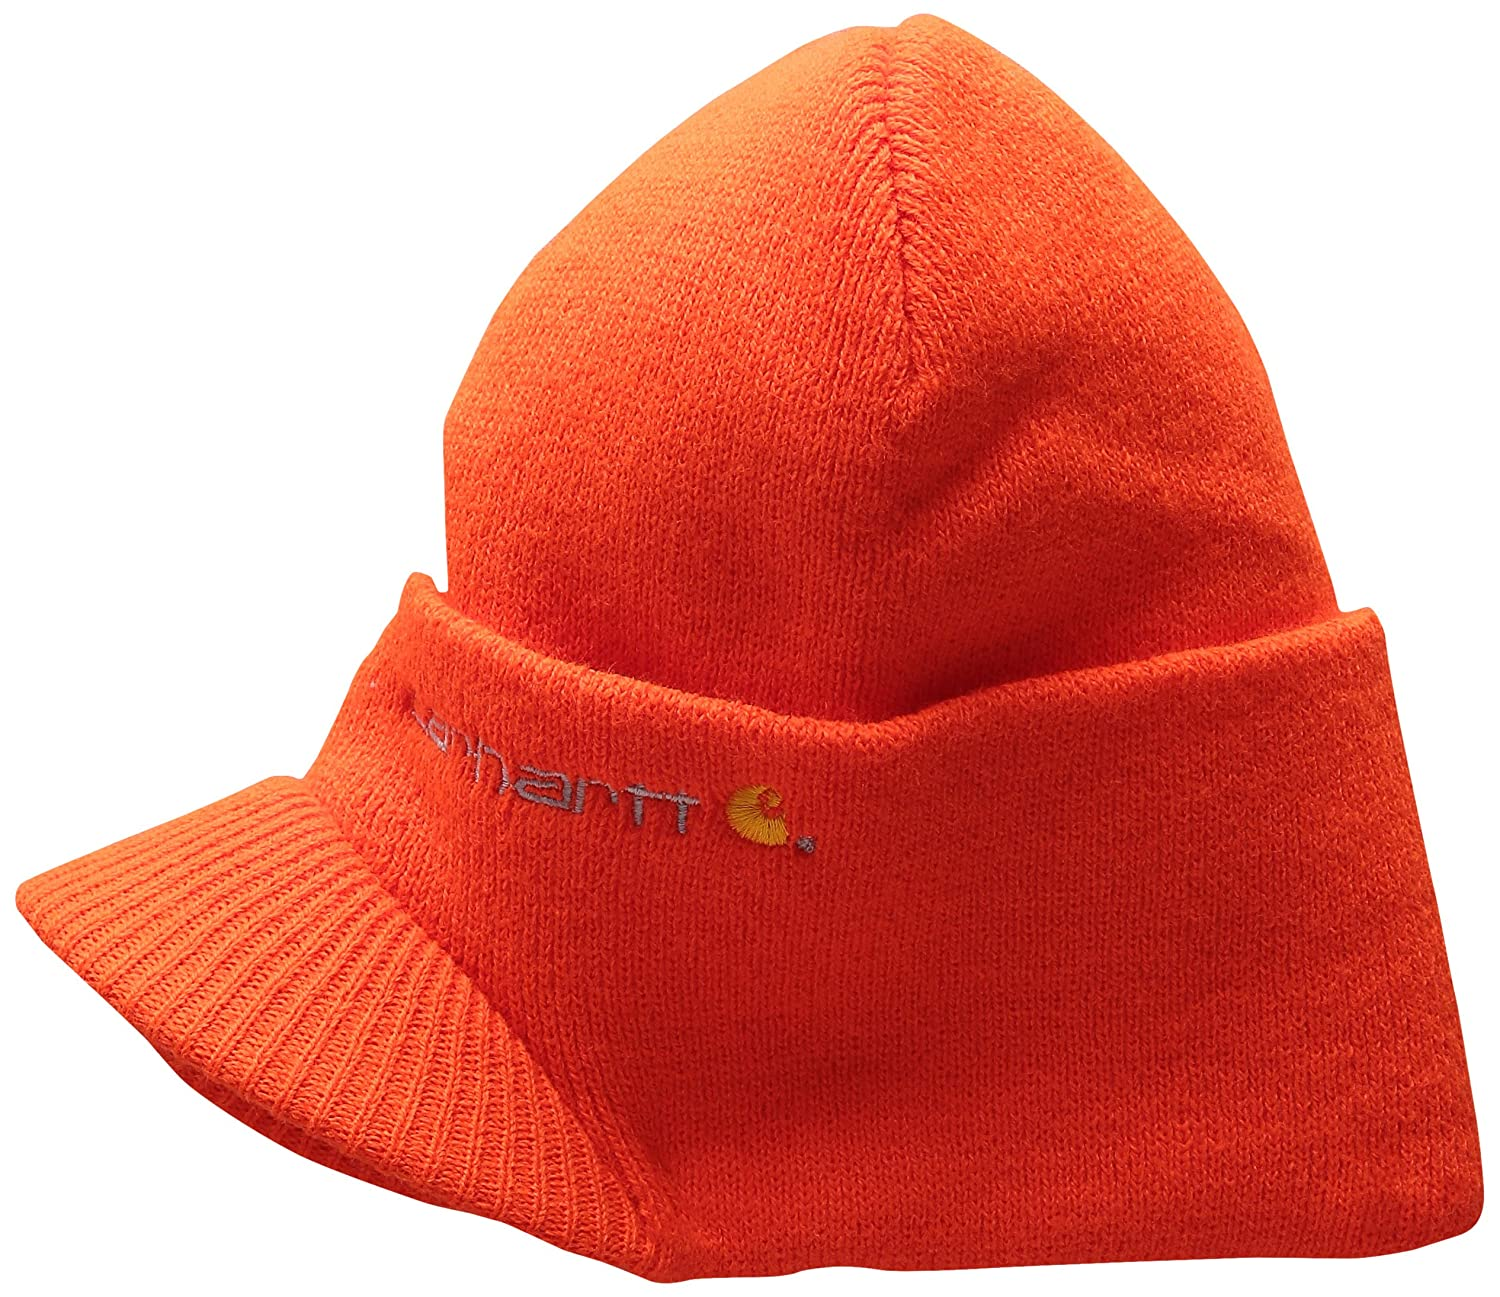 c30d00db304 Carhartt Men s Knit Hat with Visor  Amazon.ca  Clothing   Accessories